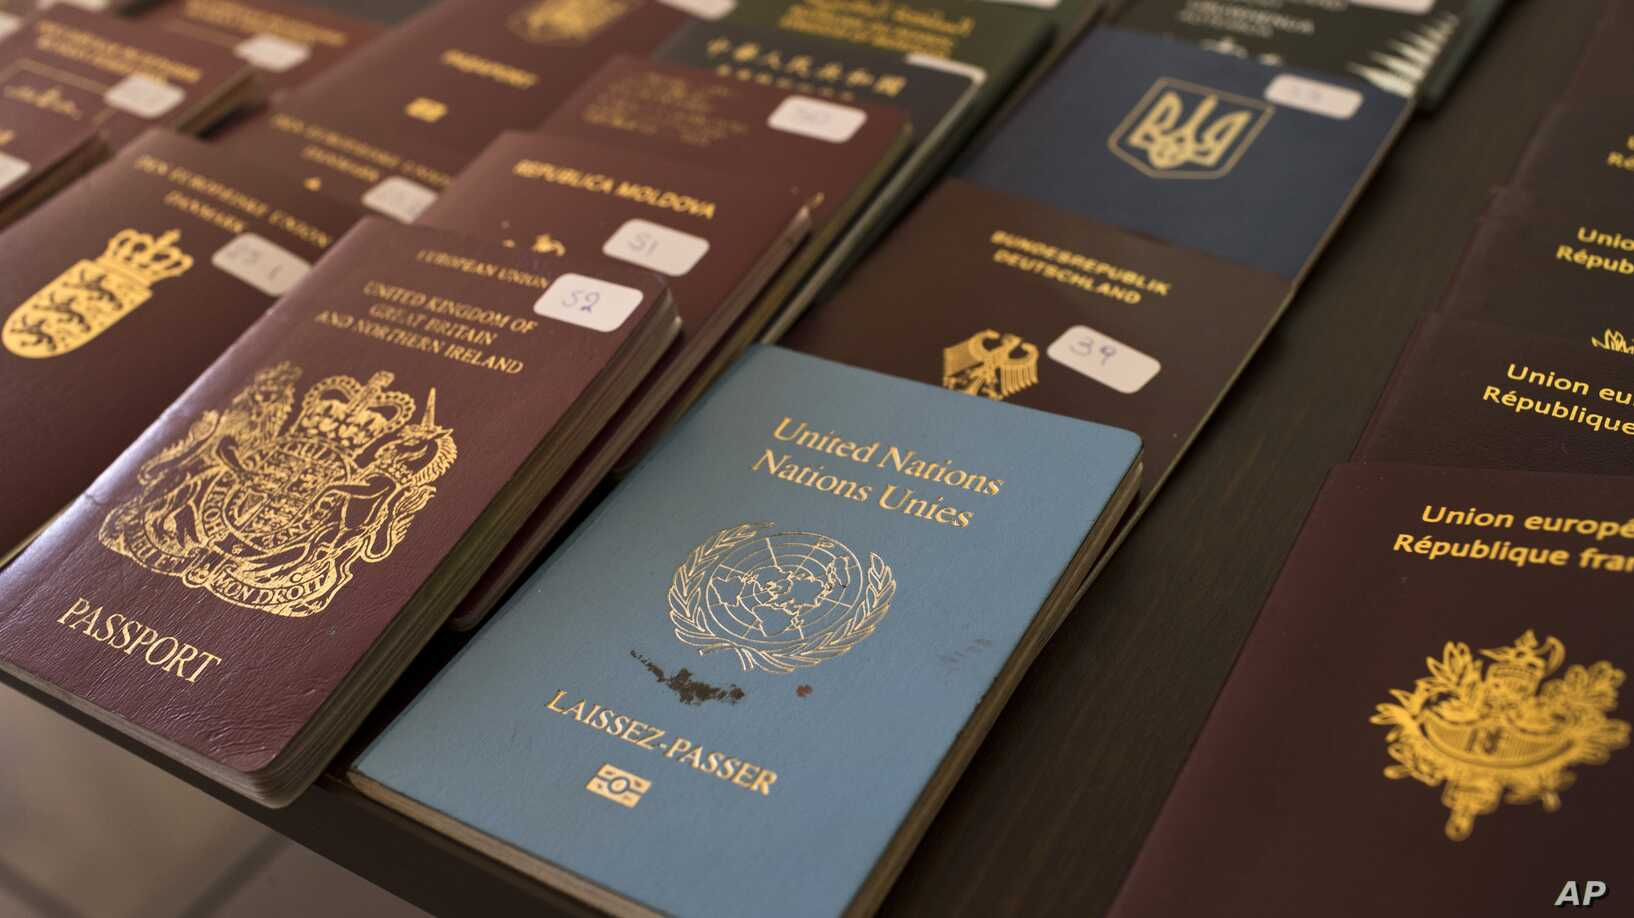 Greece: Police Officers Implicated in Major Passport Scam